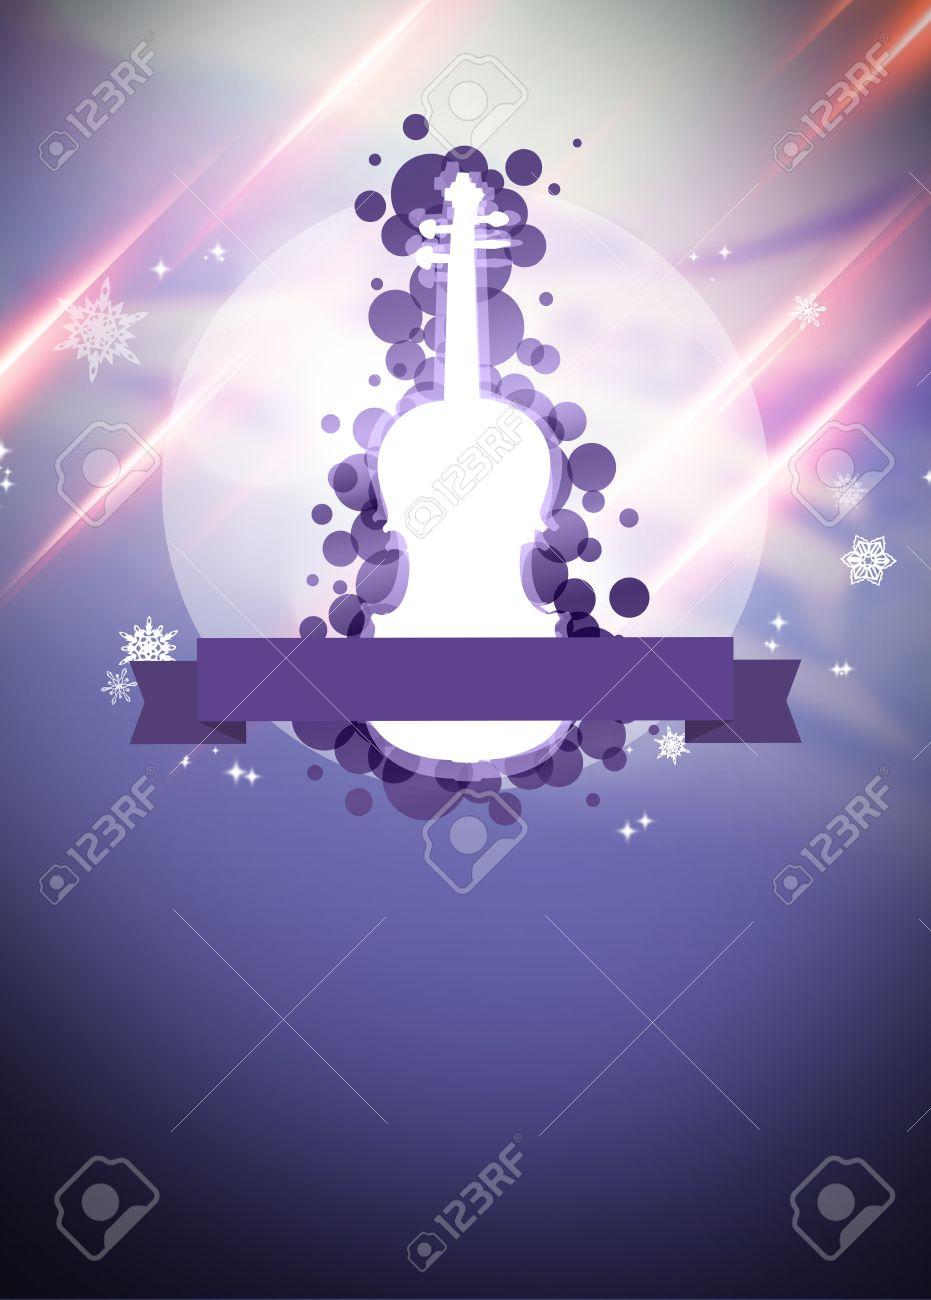 advent or christmas concert invitation poster or flyer background advent or christmas concert invitation poster or flyer background empty space stock photo 33711688